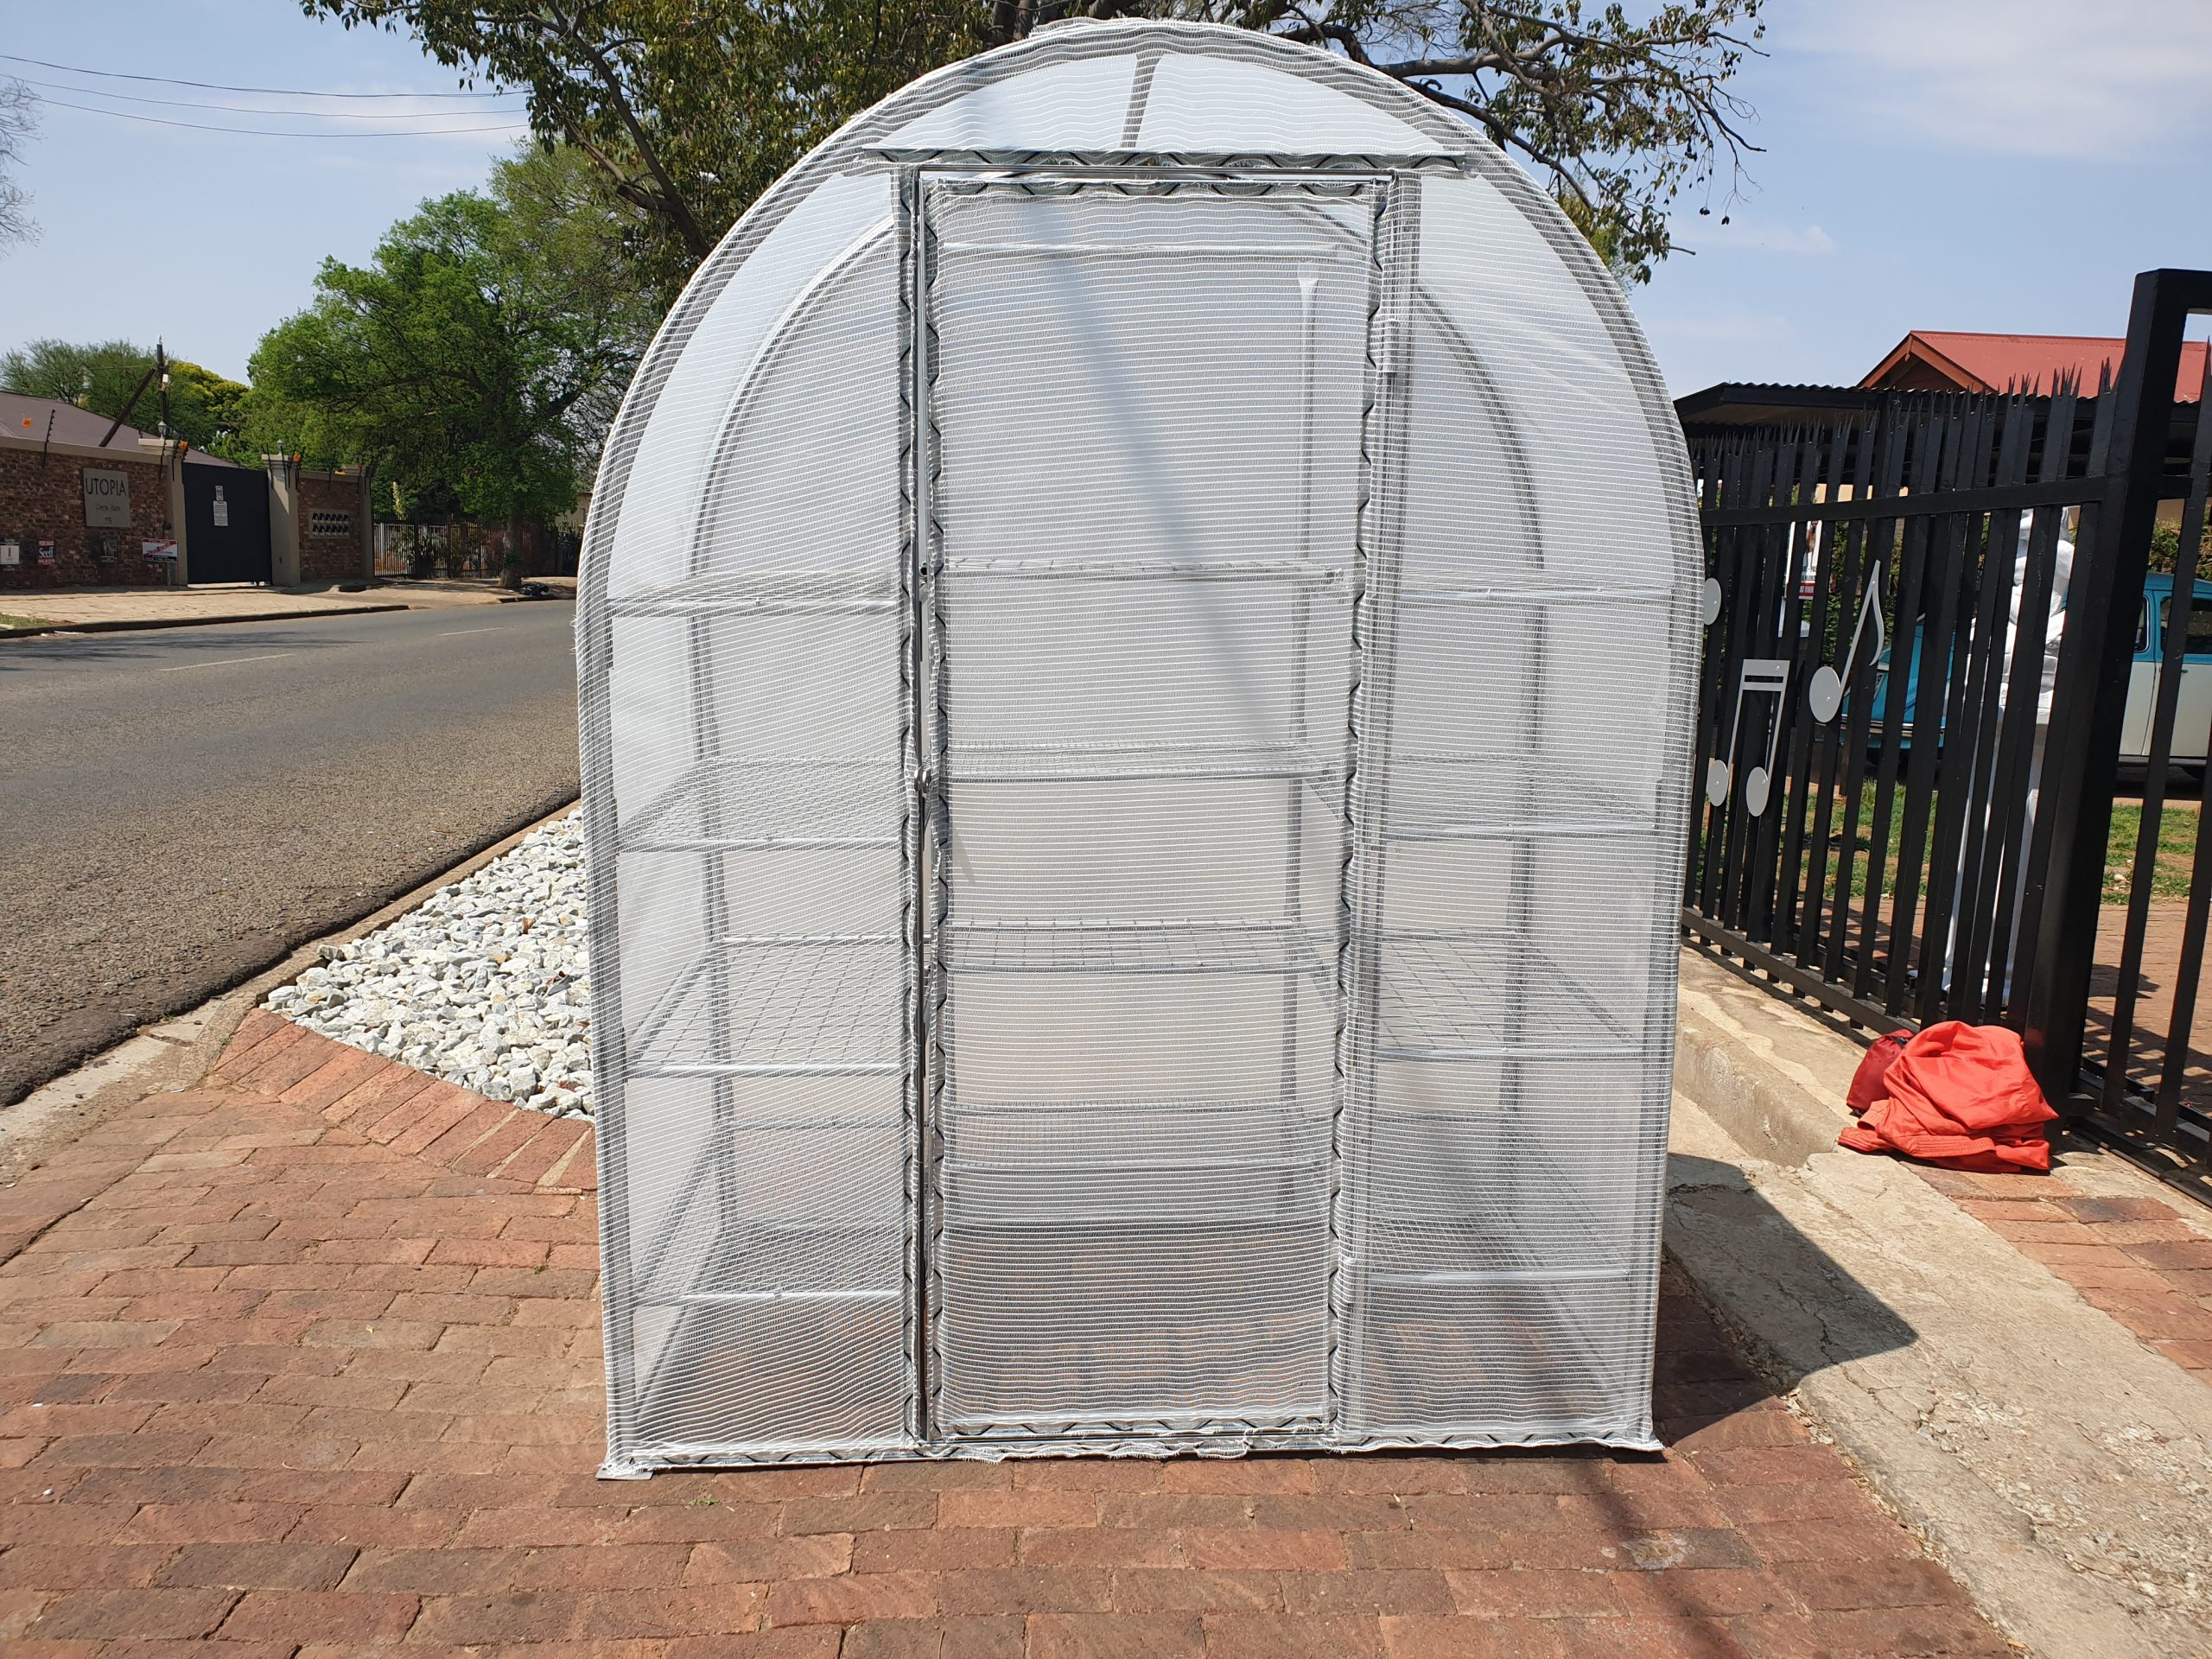 seedling_cultivation_tunnel